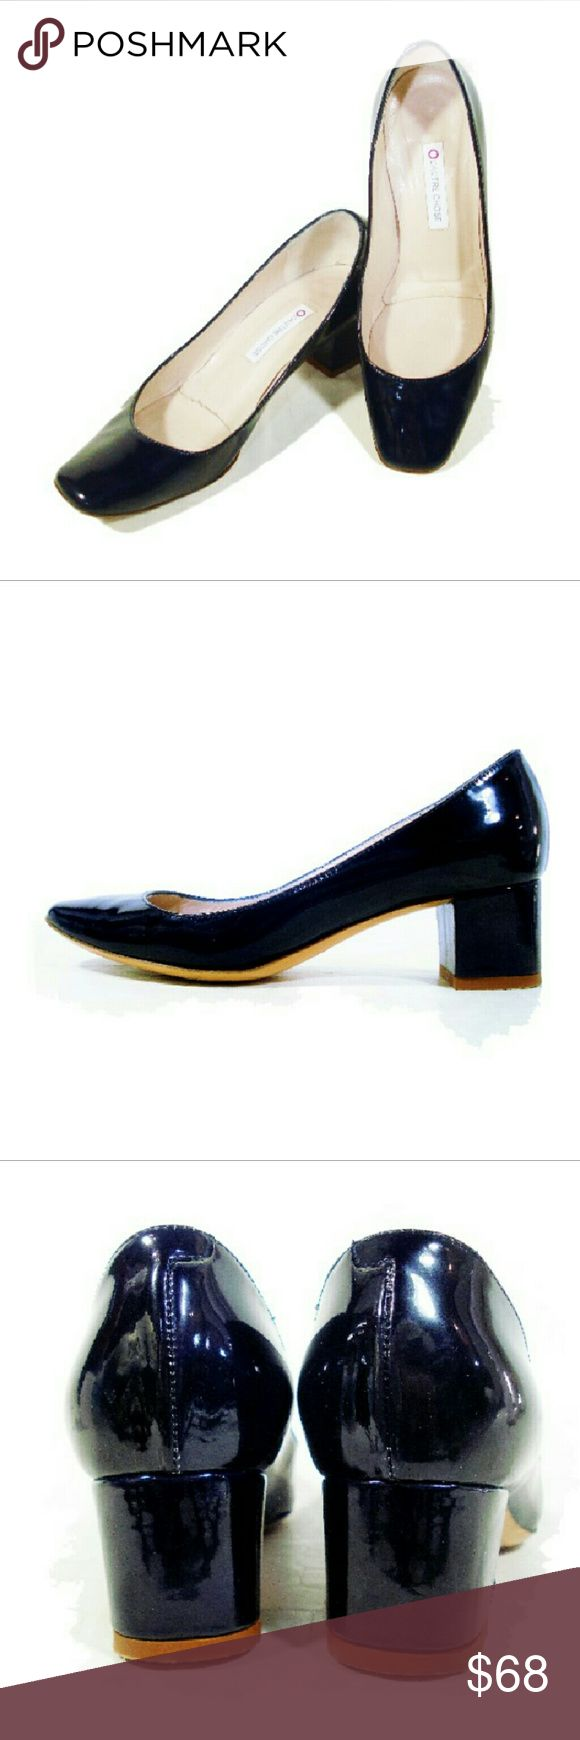 "L'AUTRE CHOSE Blue Patent Leather Court Shoes Elle France online: "" a minimalist block heel court shoe is given a modern update with a high shine patent leather and squared off toe for a wear with anything update.."" Fab for work or a Simple Touch to add to a nautical look without being campy.?? solid deep blue color, tapered Toe line, leather lining and sole and covered heel. L'AUTRE CHOSE  Shoes Heels"